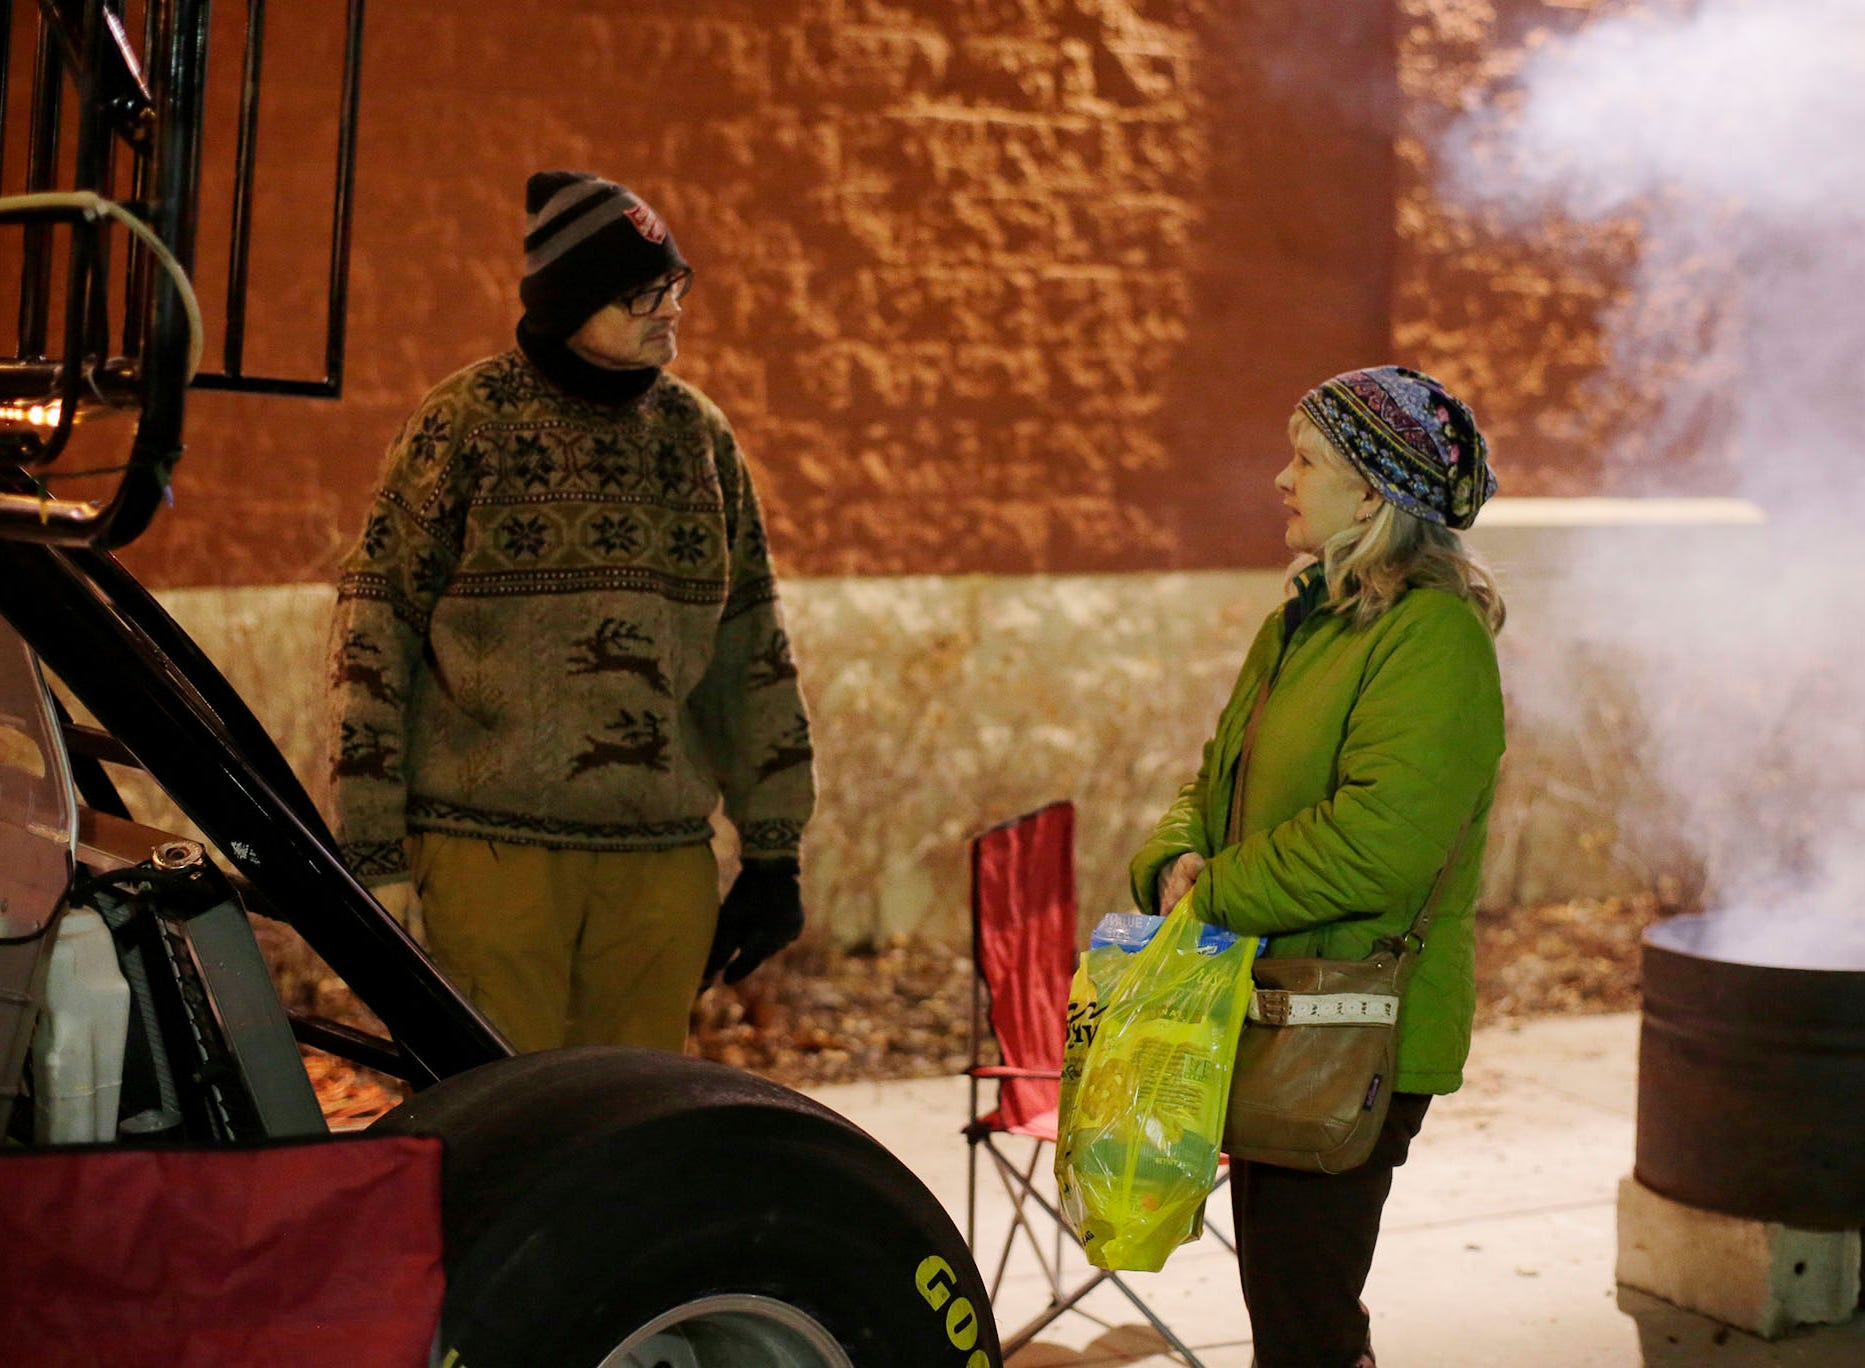 Salvation Army's Captain Daryl Mangeri, left, talks about the plight of the homeless with Kathy Powers of Sheboygan, while outside Festival Foods, Wednesday, December 12, 2018, in Sheboygan, Wis. Mangeri is sleeping in a tent outside of the store for five nights to put a light on the fact that homeless people live among us. He said that the more fortunate should step up and use their time, talent and money to help people in this situation.